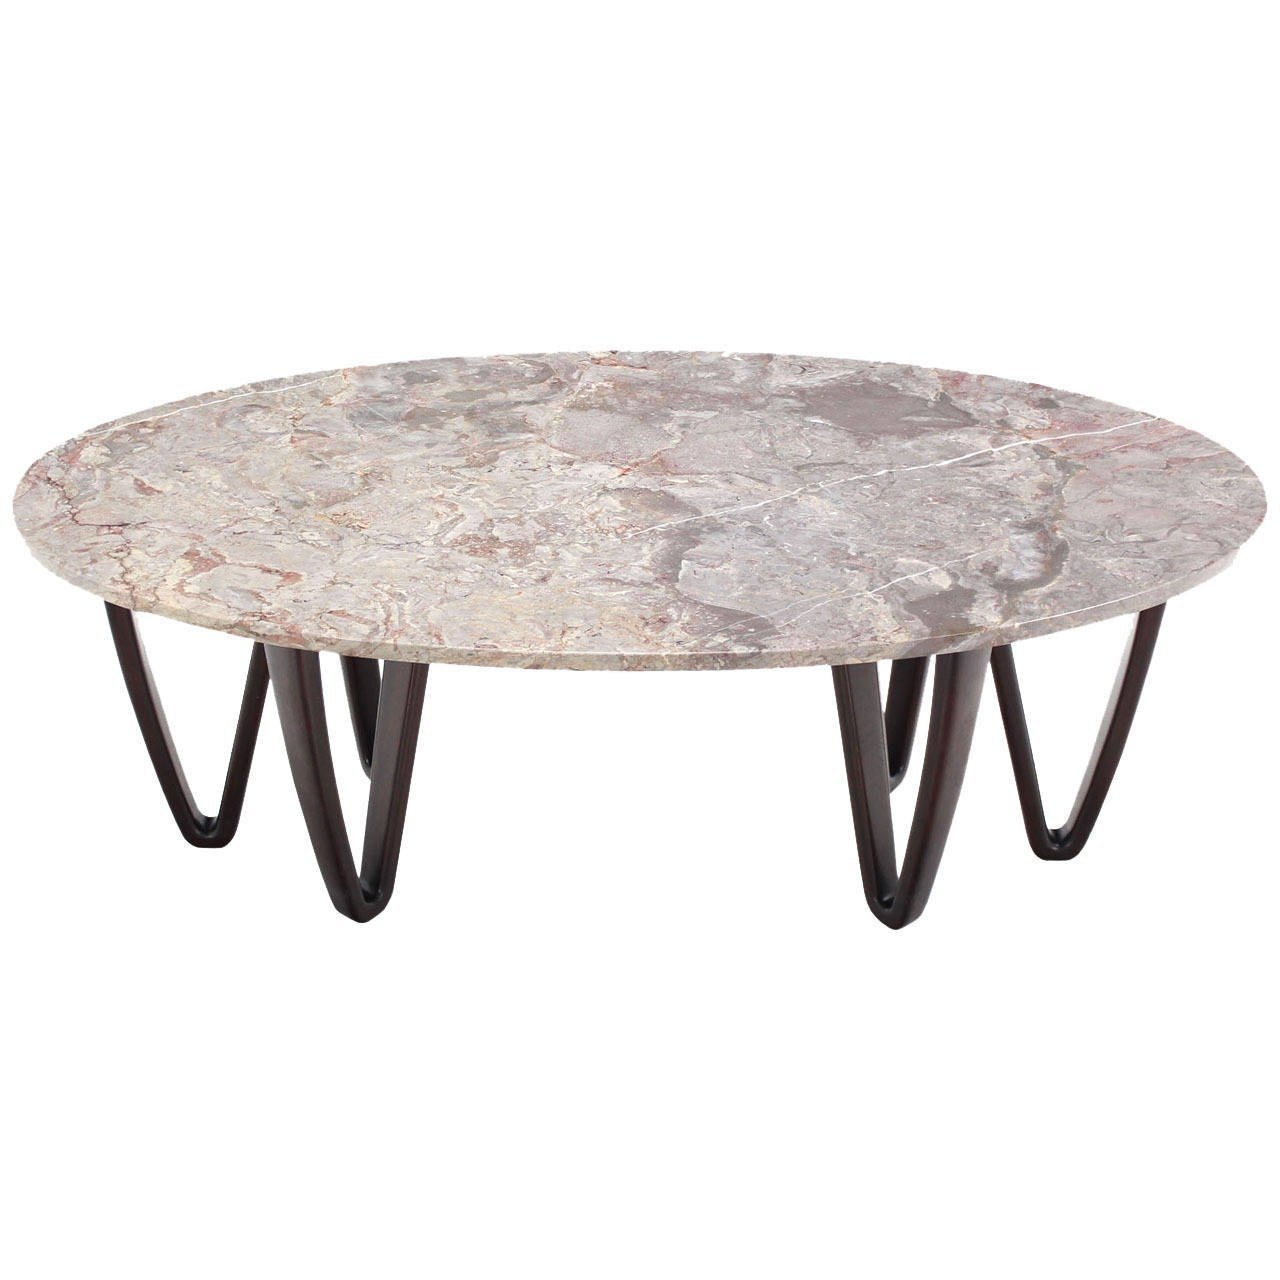 Home Decor: Amusing Marble Top Coffee Table And Oval Table On Wooden Pertaining To Smart Round Marble Top Coffee Tables (View 14 of 30)